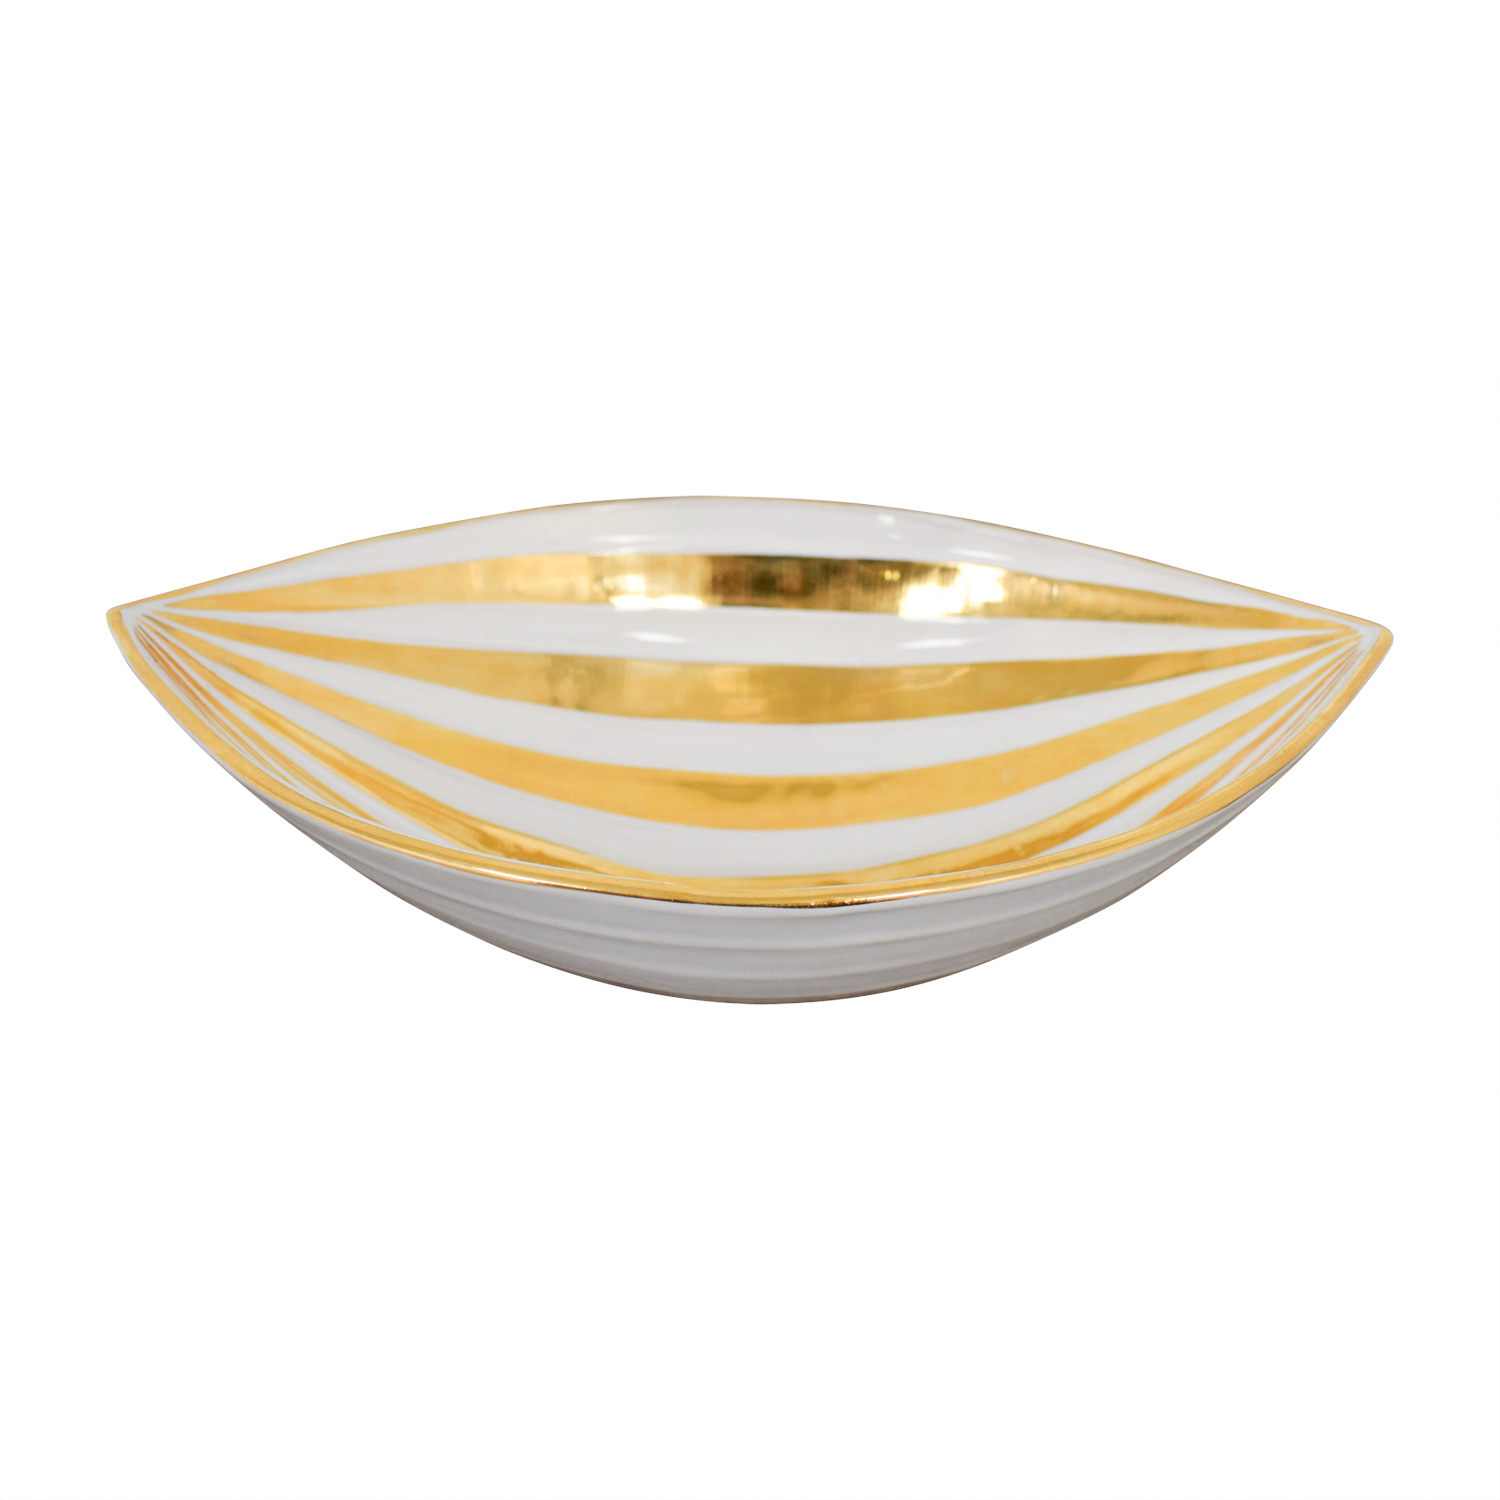 buy Jonathan Adler Jonathan Adler Gold and White Glazed Ceramic Bowl online